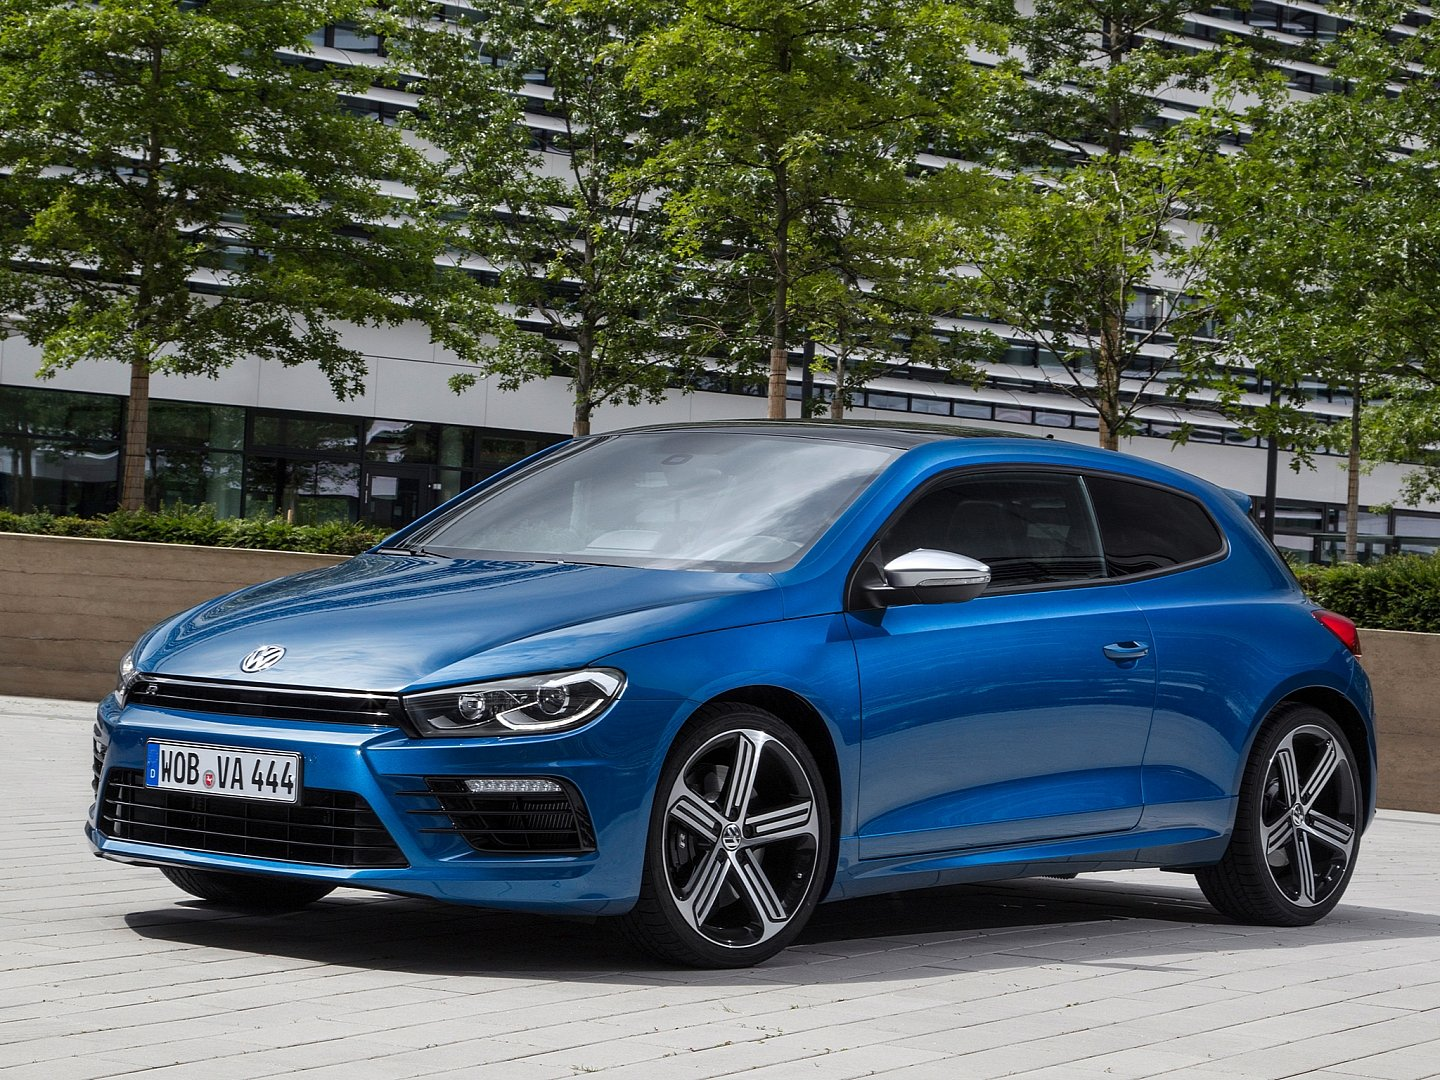 scirocco-radditional-20-ps-accelerates-06-seconds-faster-to-100-km-h-than-its-predecessor-1080p-10